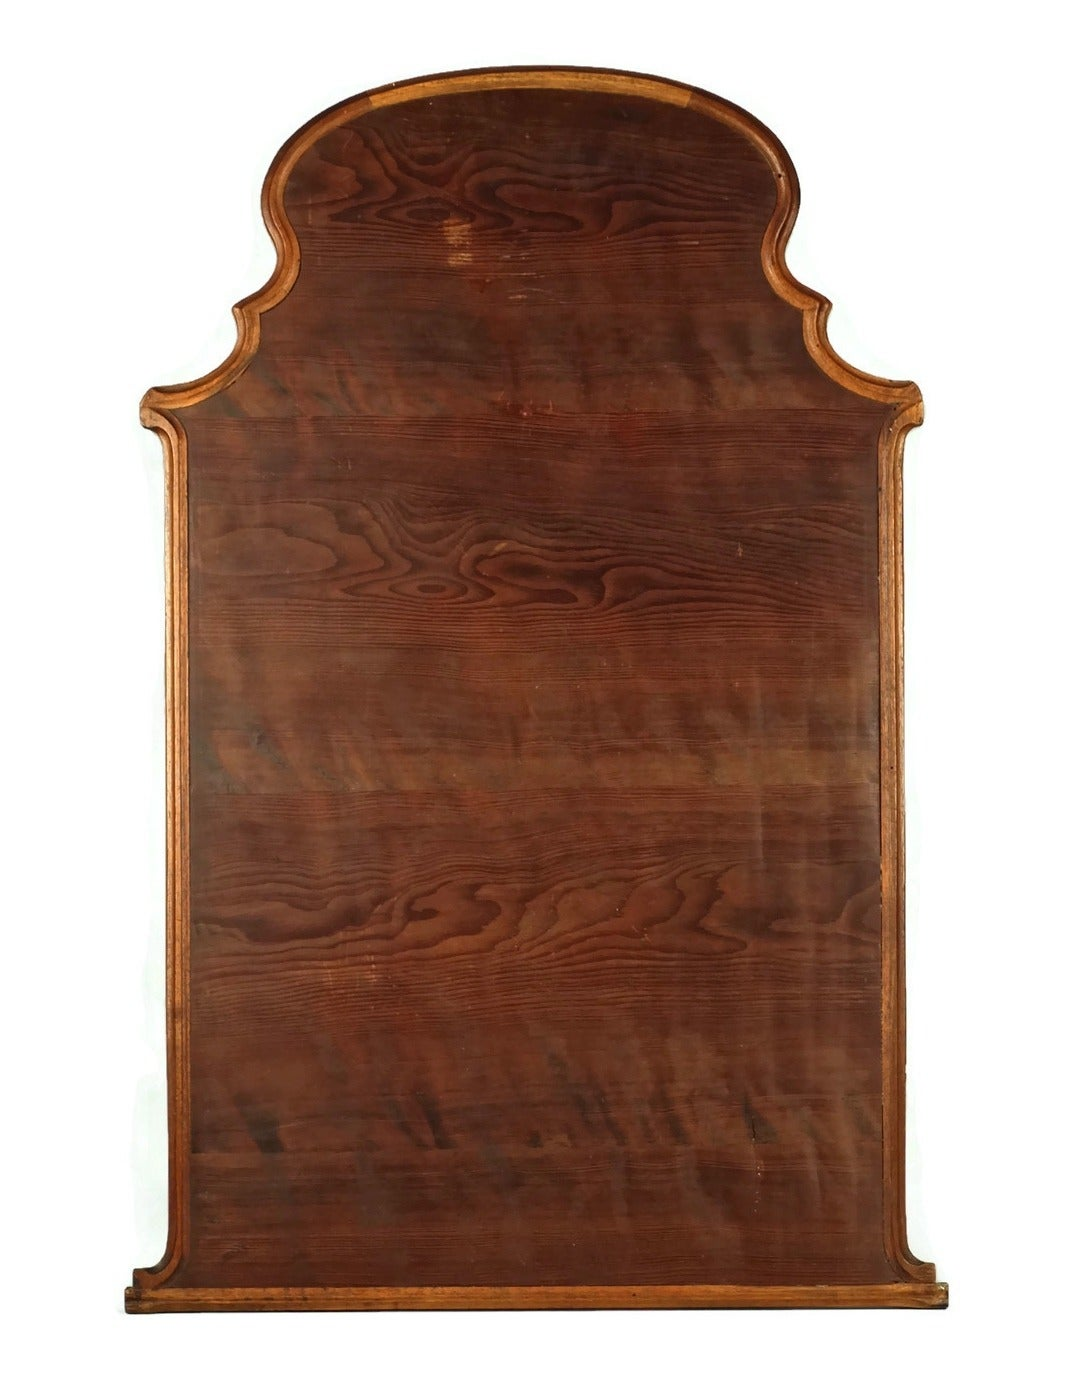 emile gall art nouveau marquetry fire screen panel with. Black Bedroom Furniture Sets. Home Design Ideas